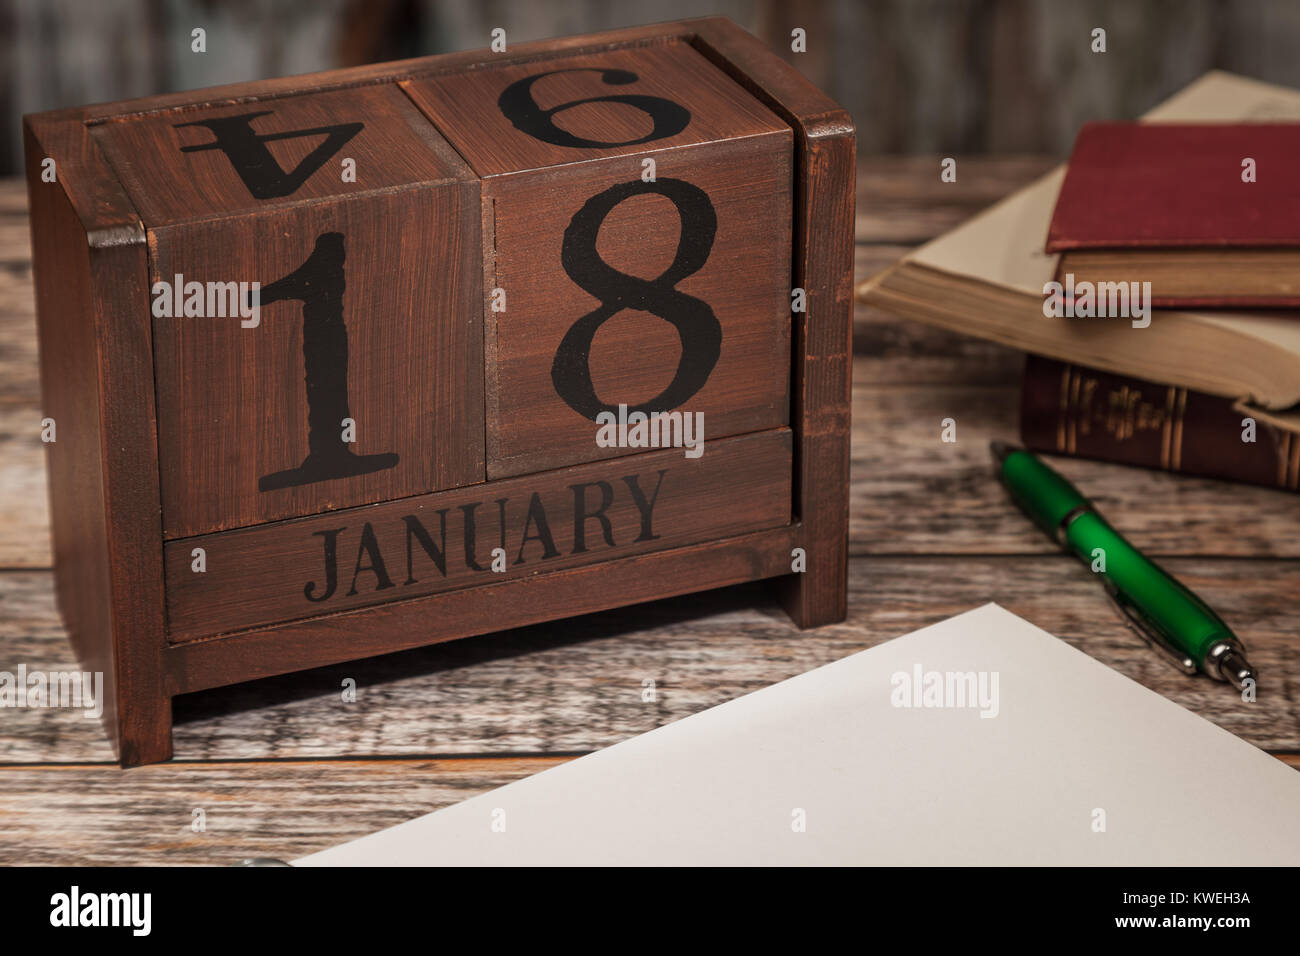 Perpetual Calendar in desk scene with blank diary page, January 18th - Stock Image